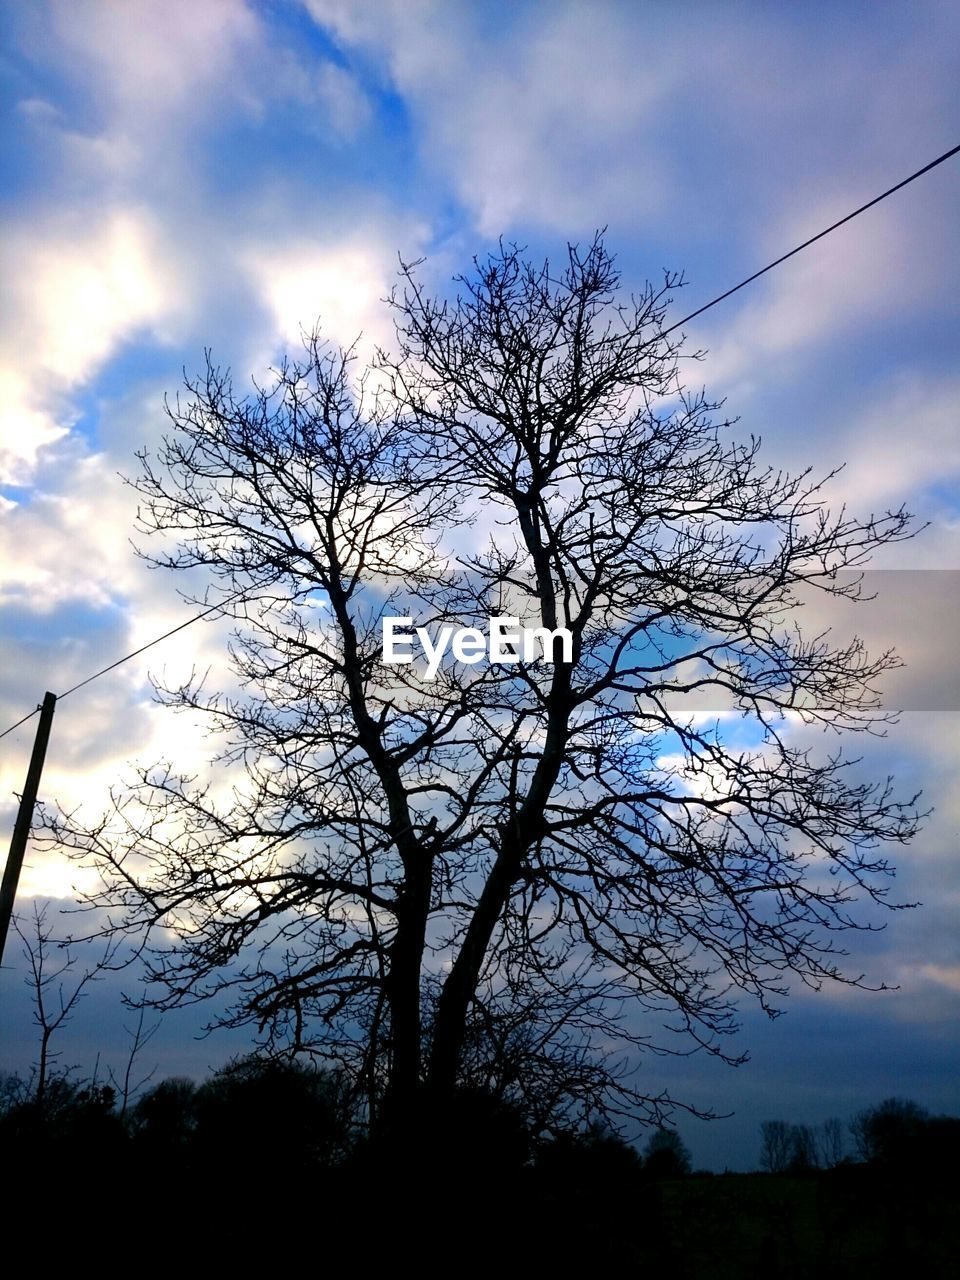 sky, tree, low angle view, cloud - sky, beauty in nature, nature, tranquility, silhouette, bare tree, branch, tranquil scene, outdoors, scenics, no people, day